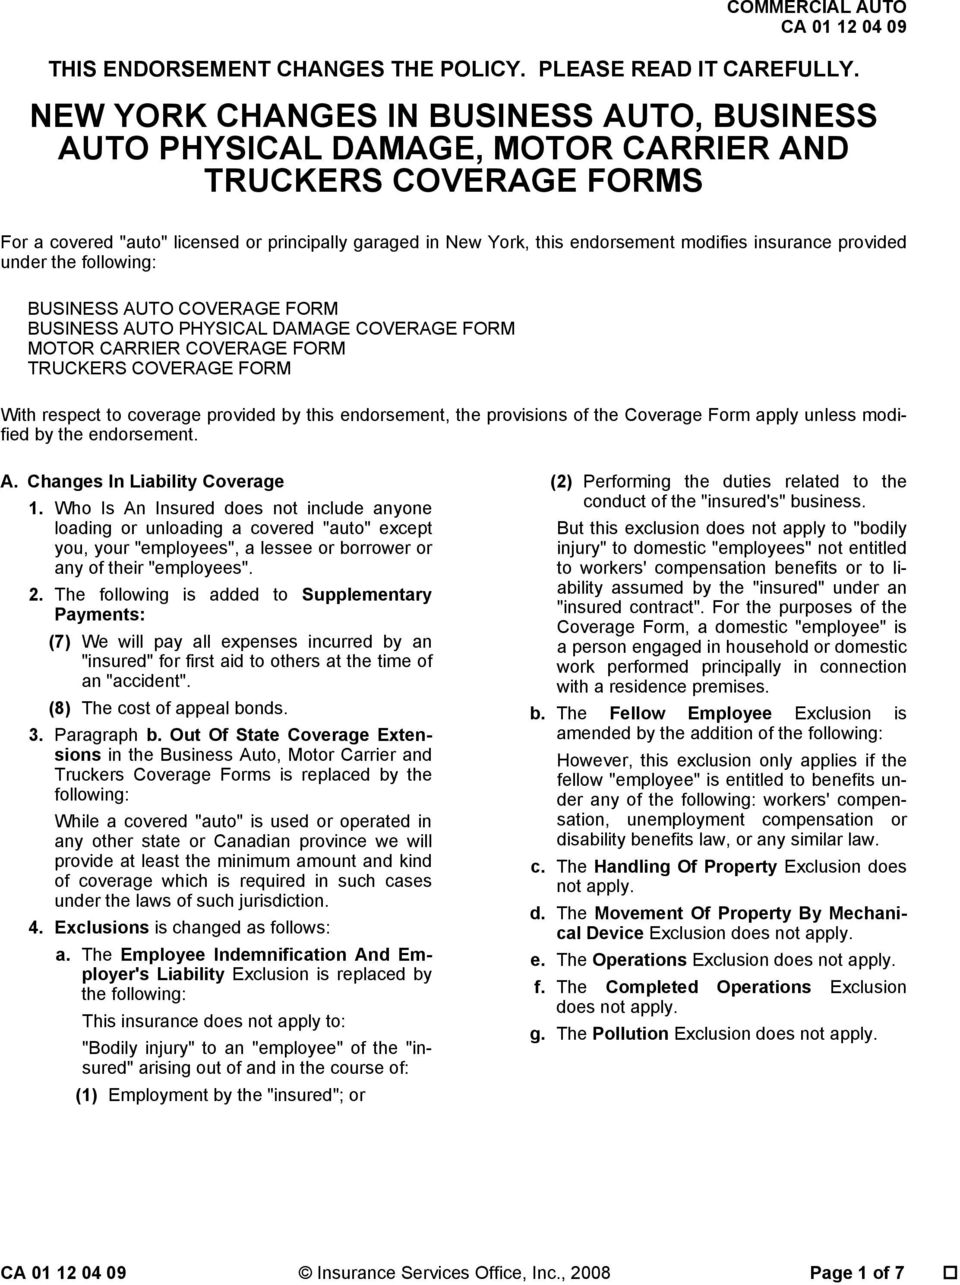 insurance provided under the BUSINESS AUTO COVERAGE FORM BUSINESS AUTO PHYSICAL DAMAGE COVERAGE FORM MOTOR CARRIER COVERAGE FORM TRUCKERS COVERAGE FORM With respect to coverage provided by this